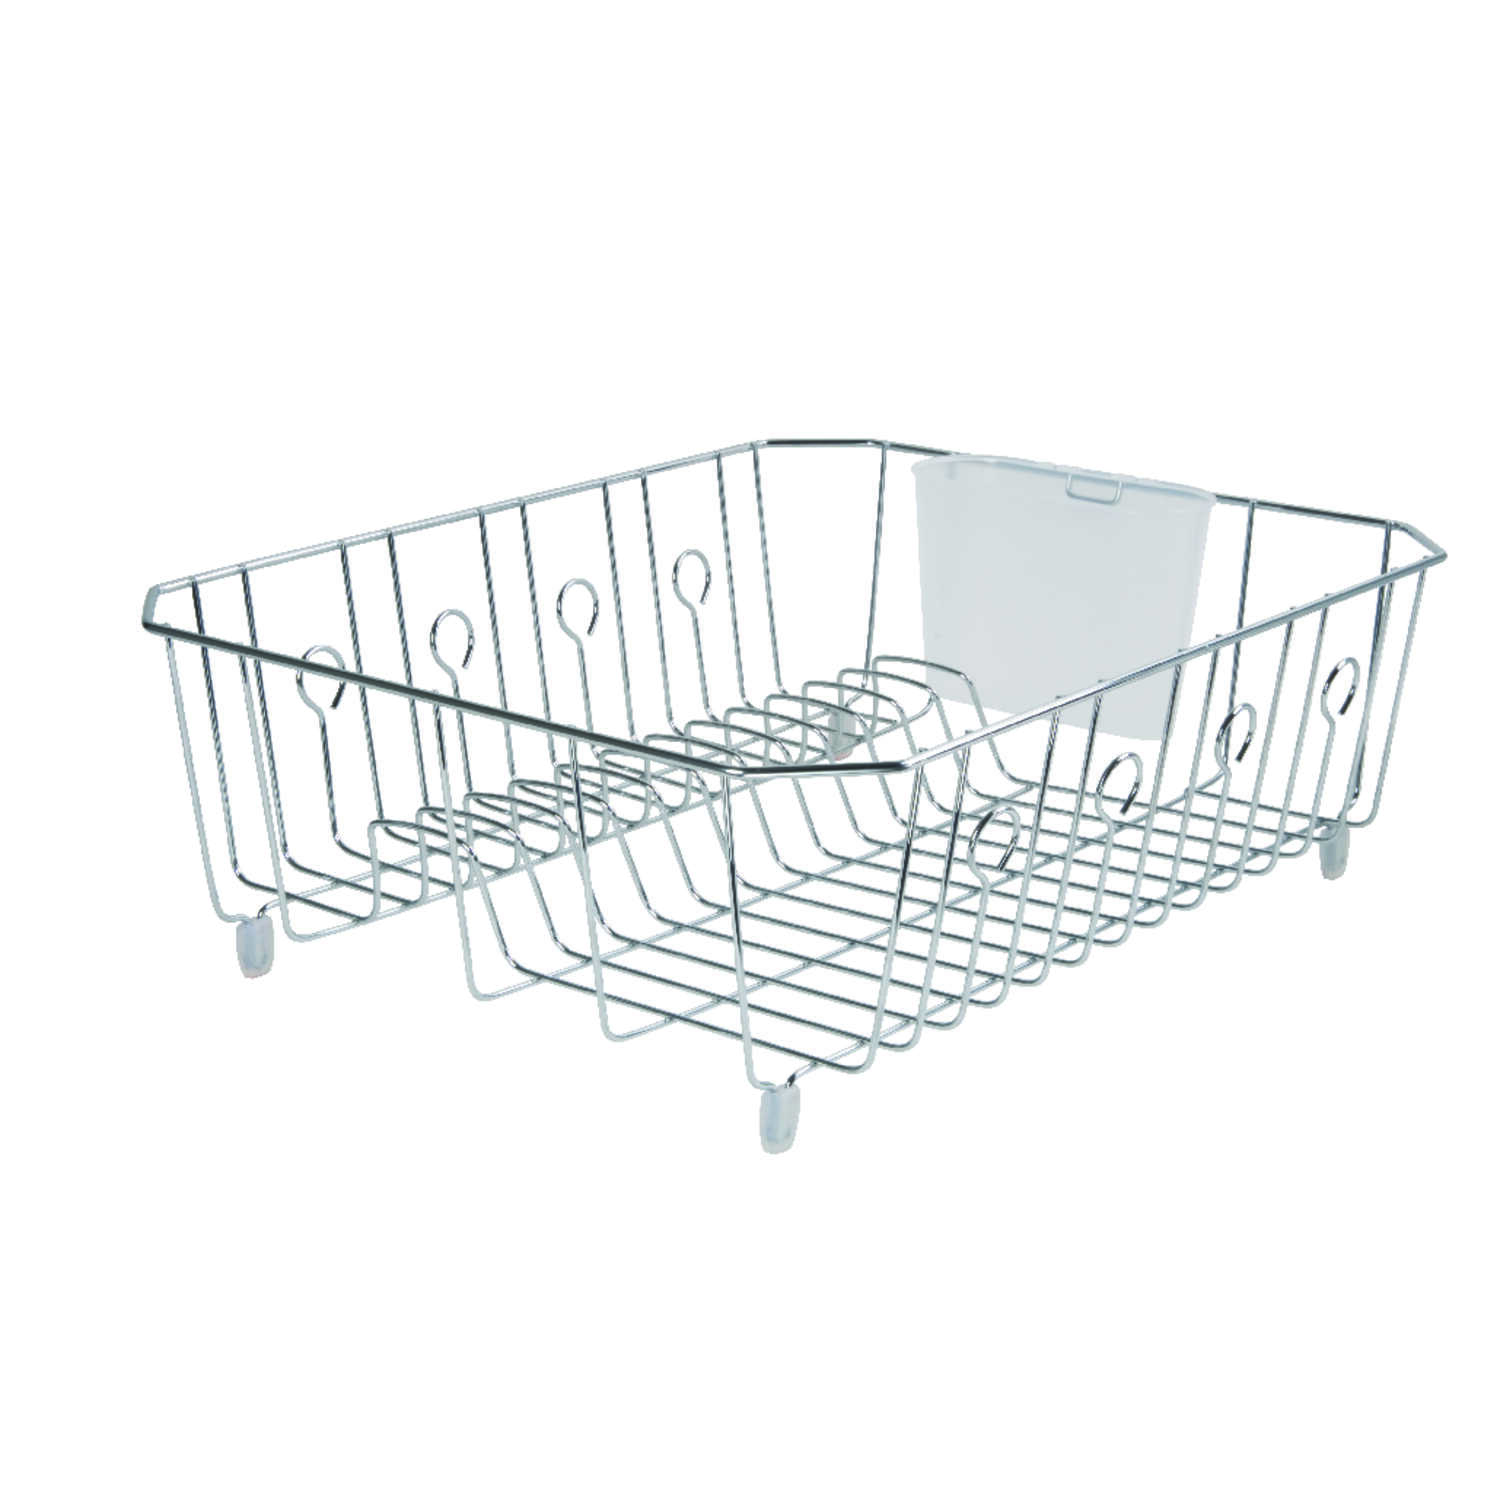 Rubbermaid  17.6 in. L x 5.9 in. H x 13.8 in. W Chrome  Steel  Dish Drainer